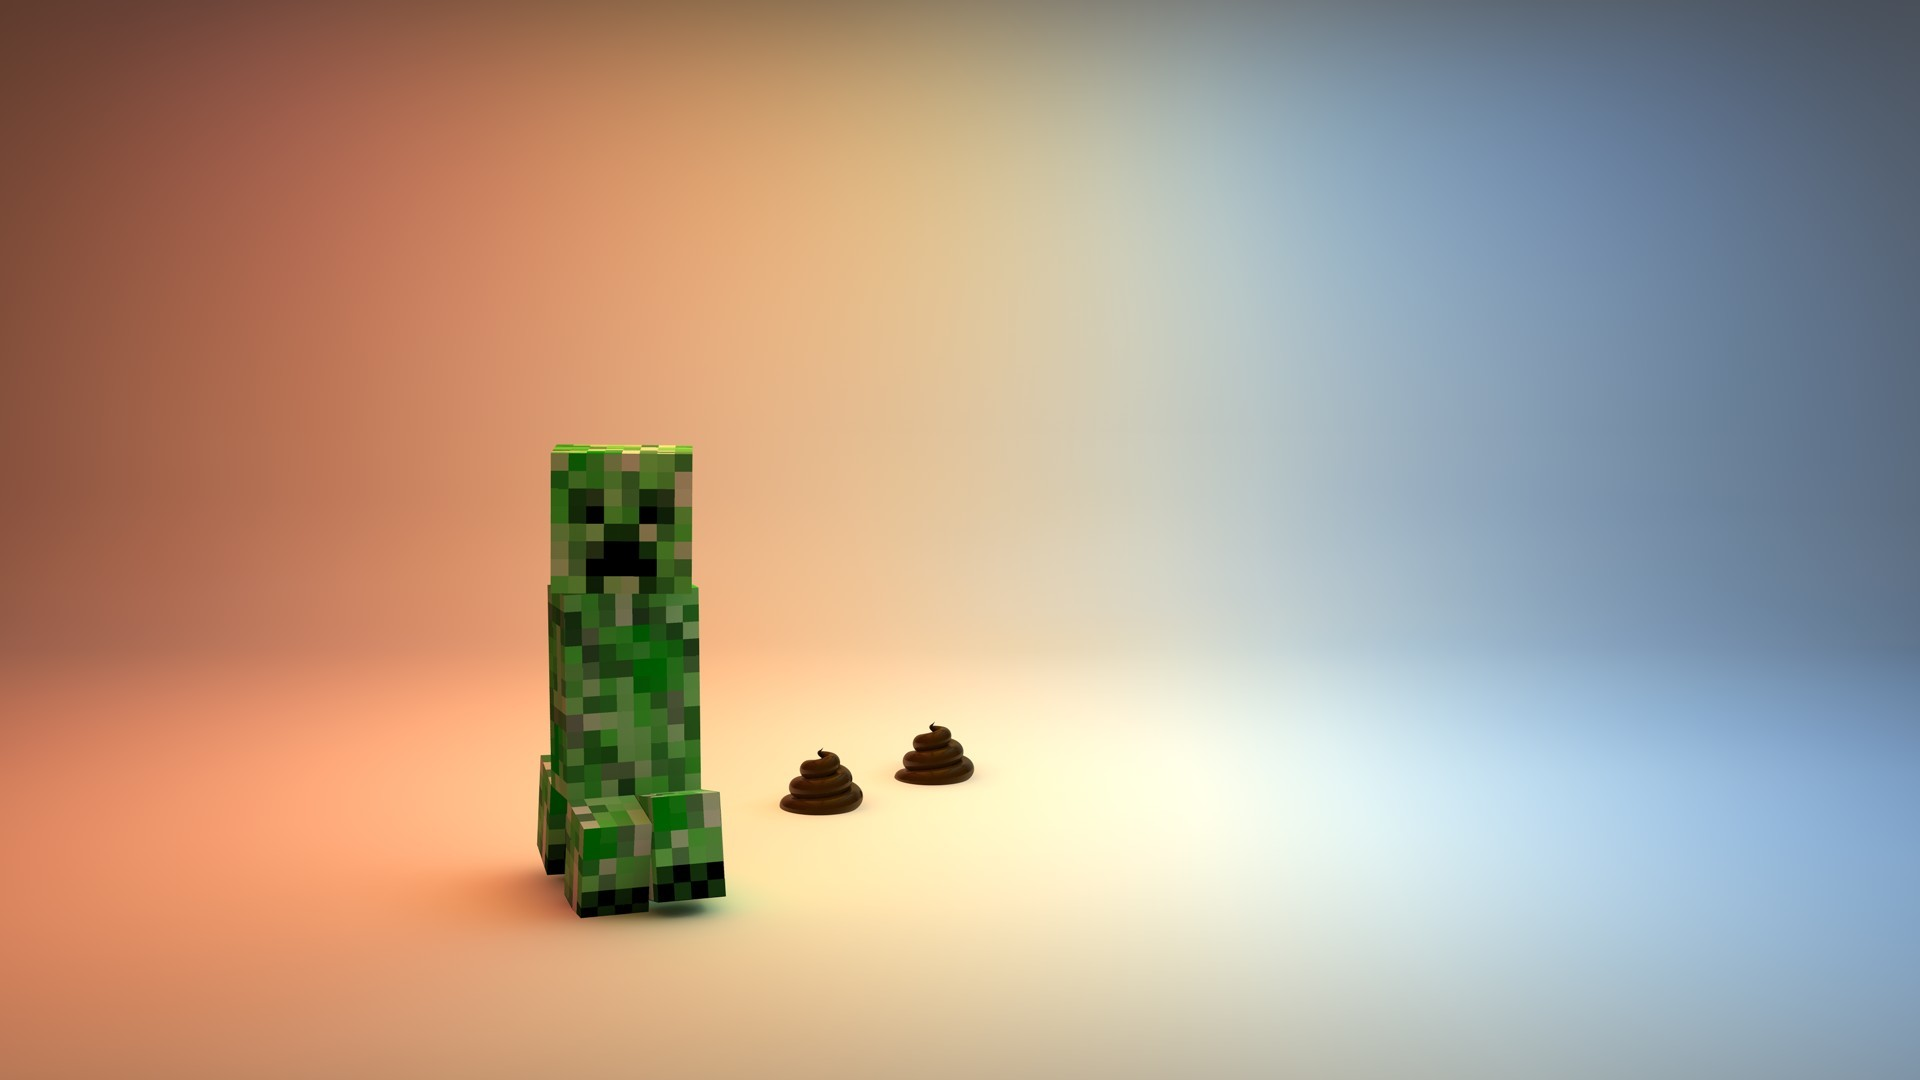 1920x1080 Awesome-minecraft-desktop-backgrounds-hd-o-wallpaper-wpc9202676